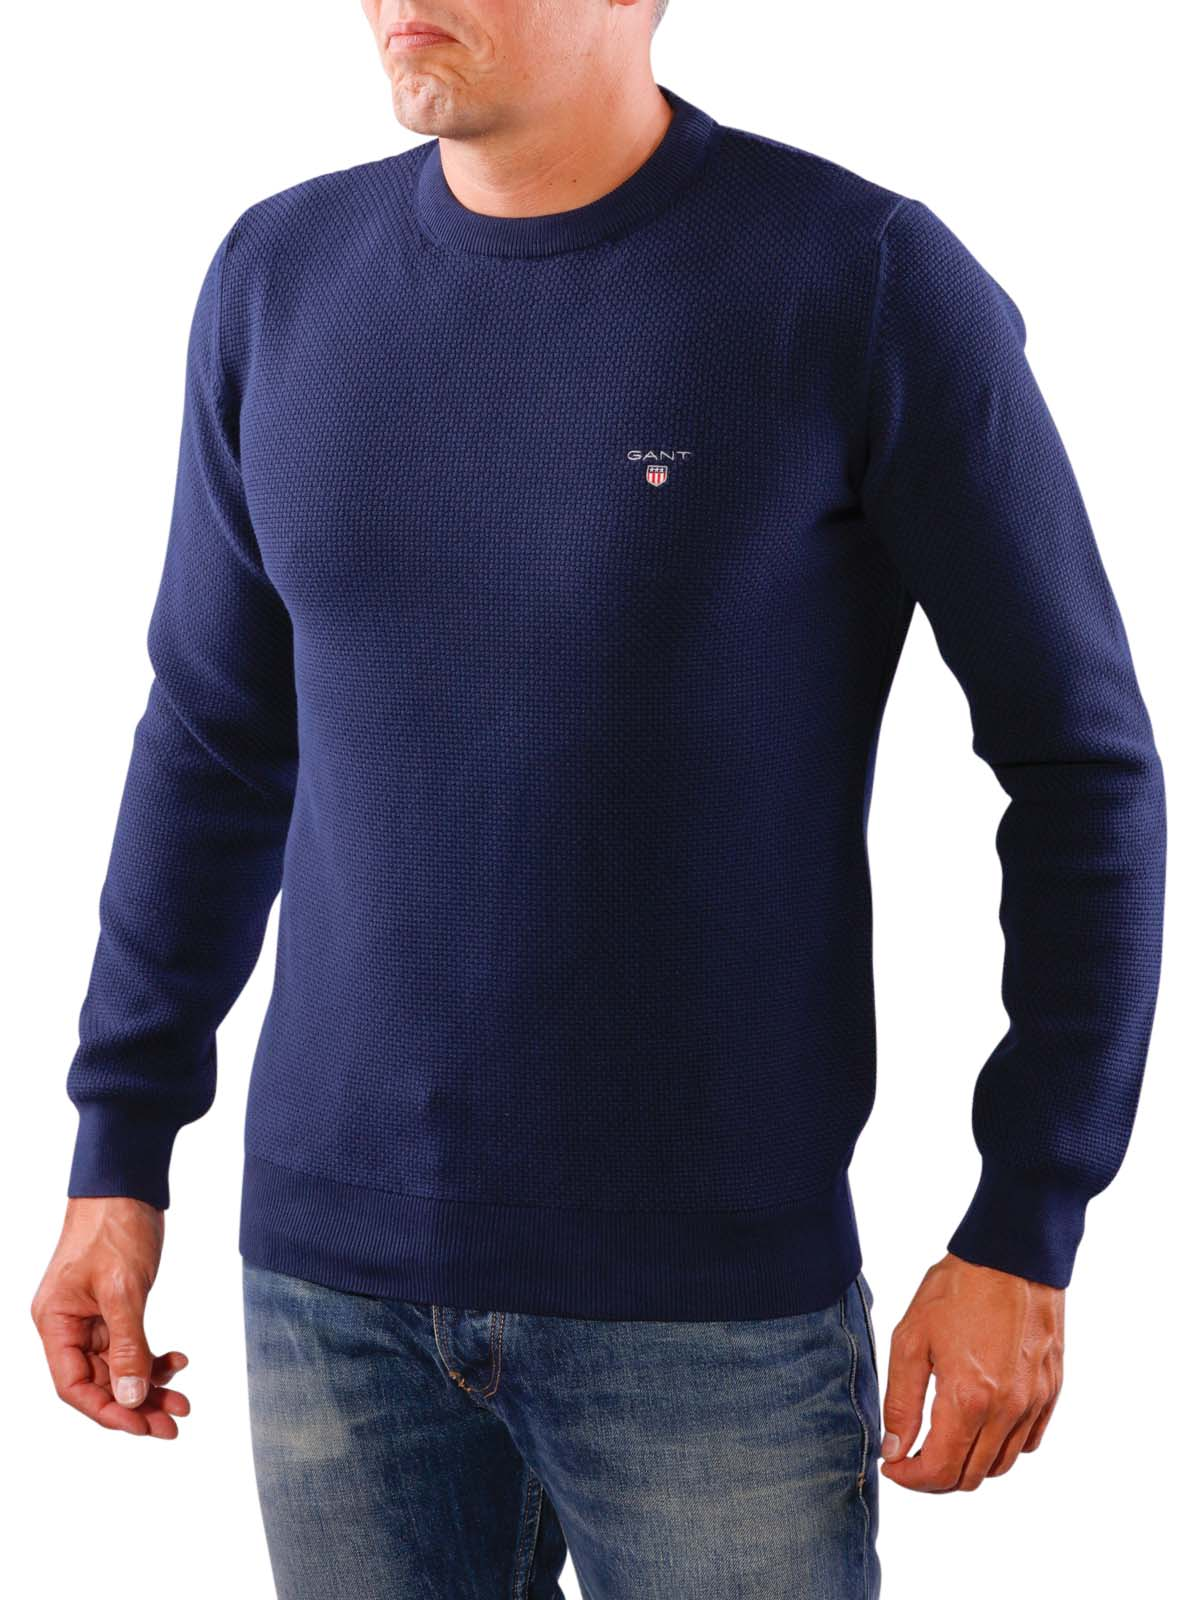 Gant pullovers- casual elegance from New England